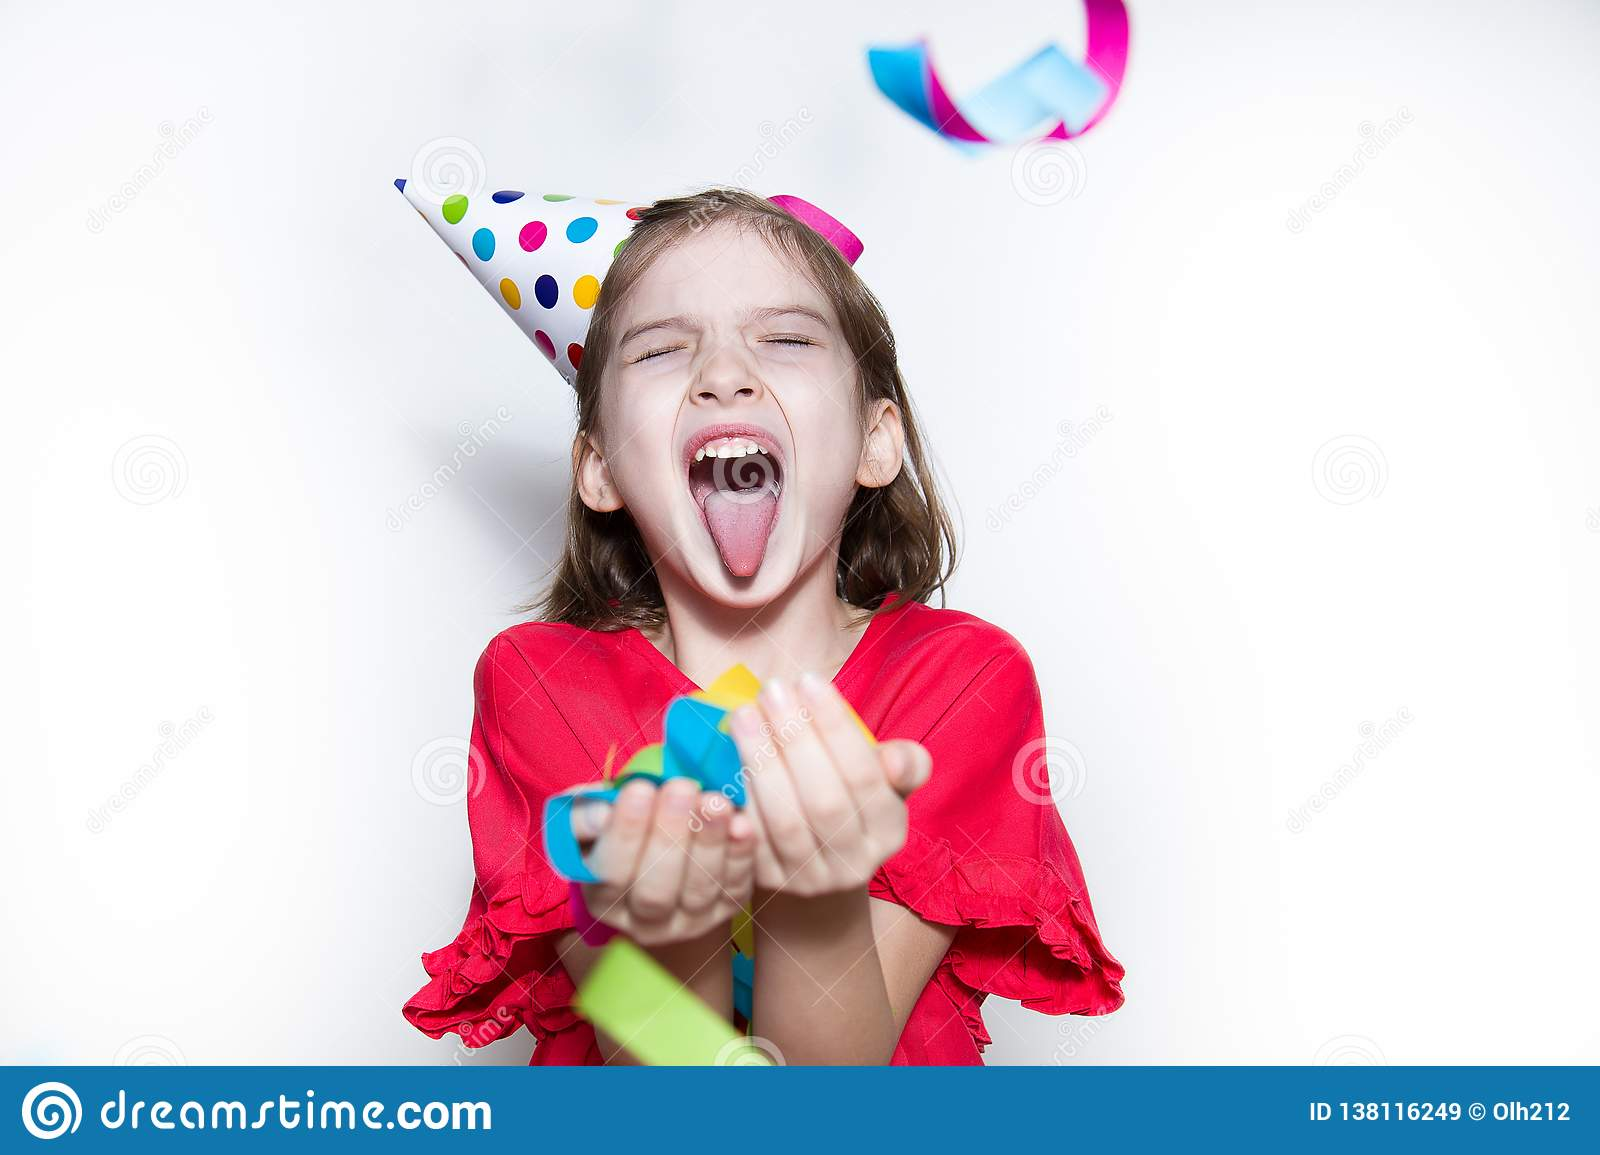 A child on a white background celebrates a bright event, wears a red dress and a cap.